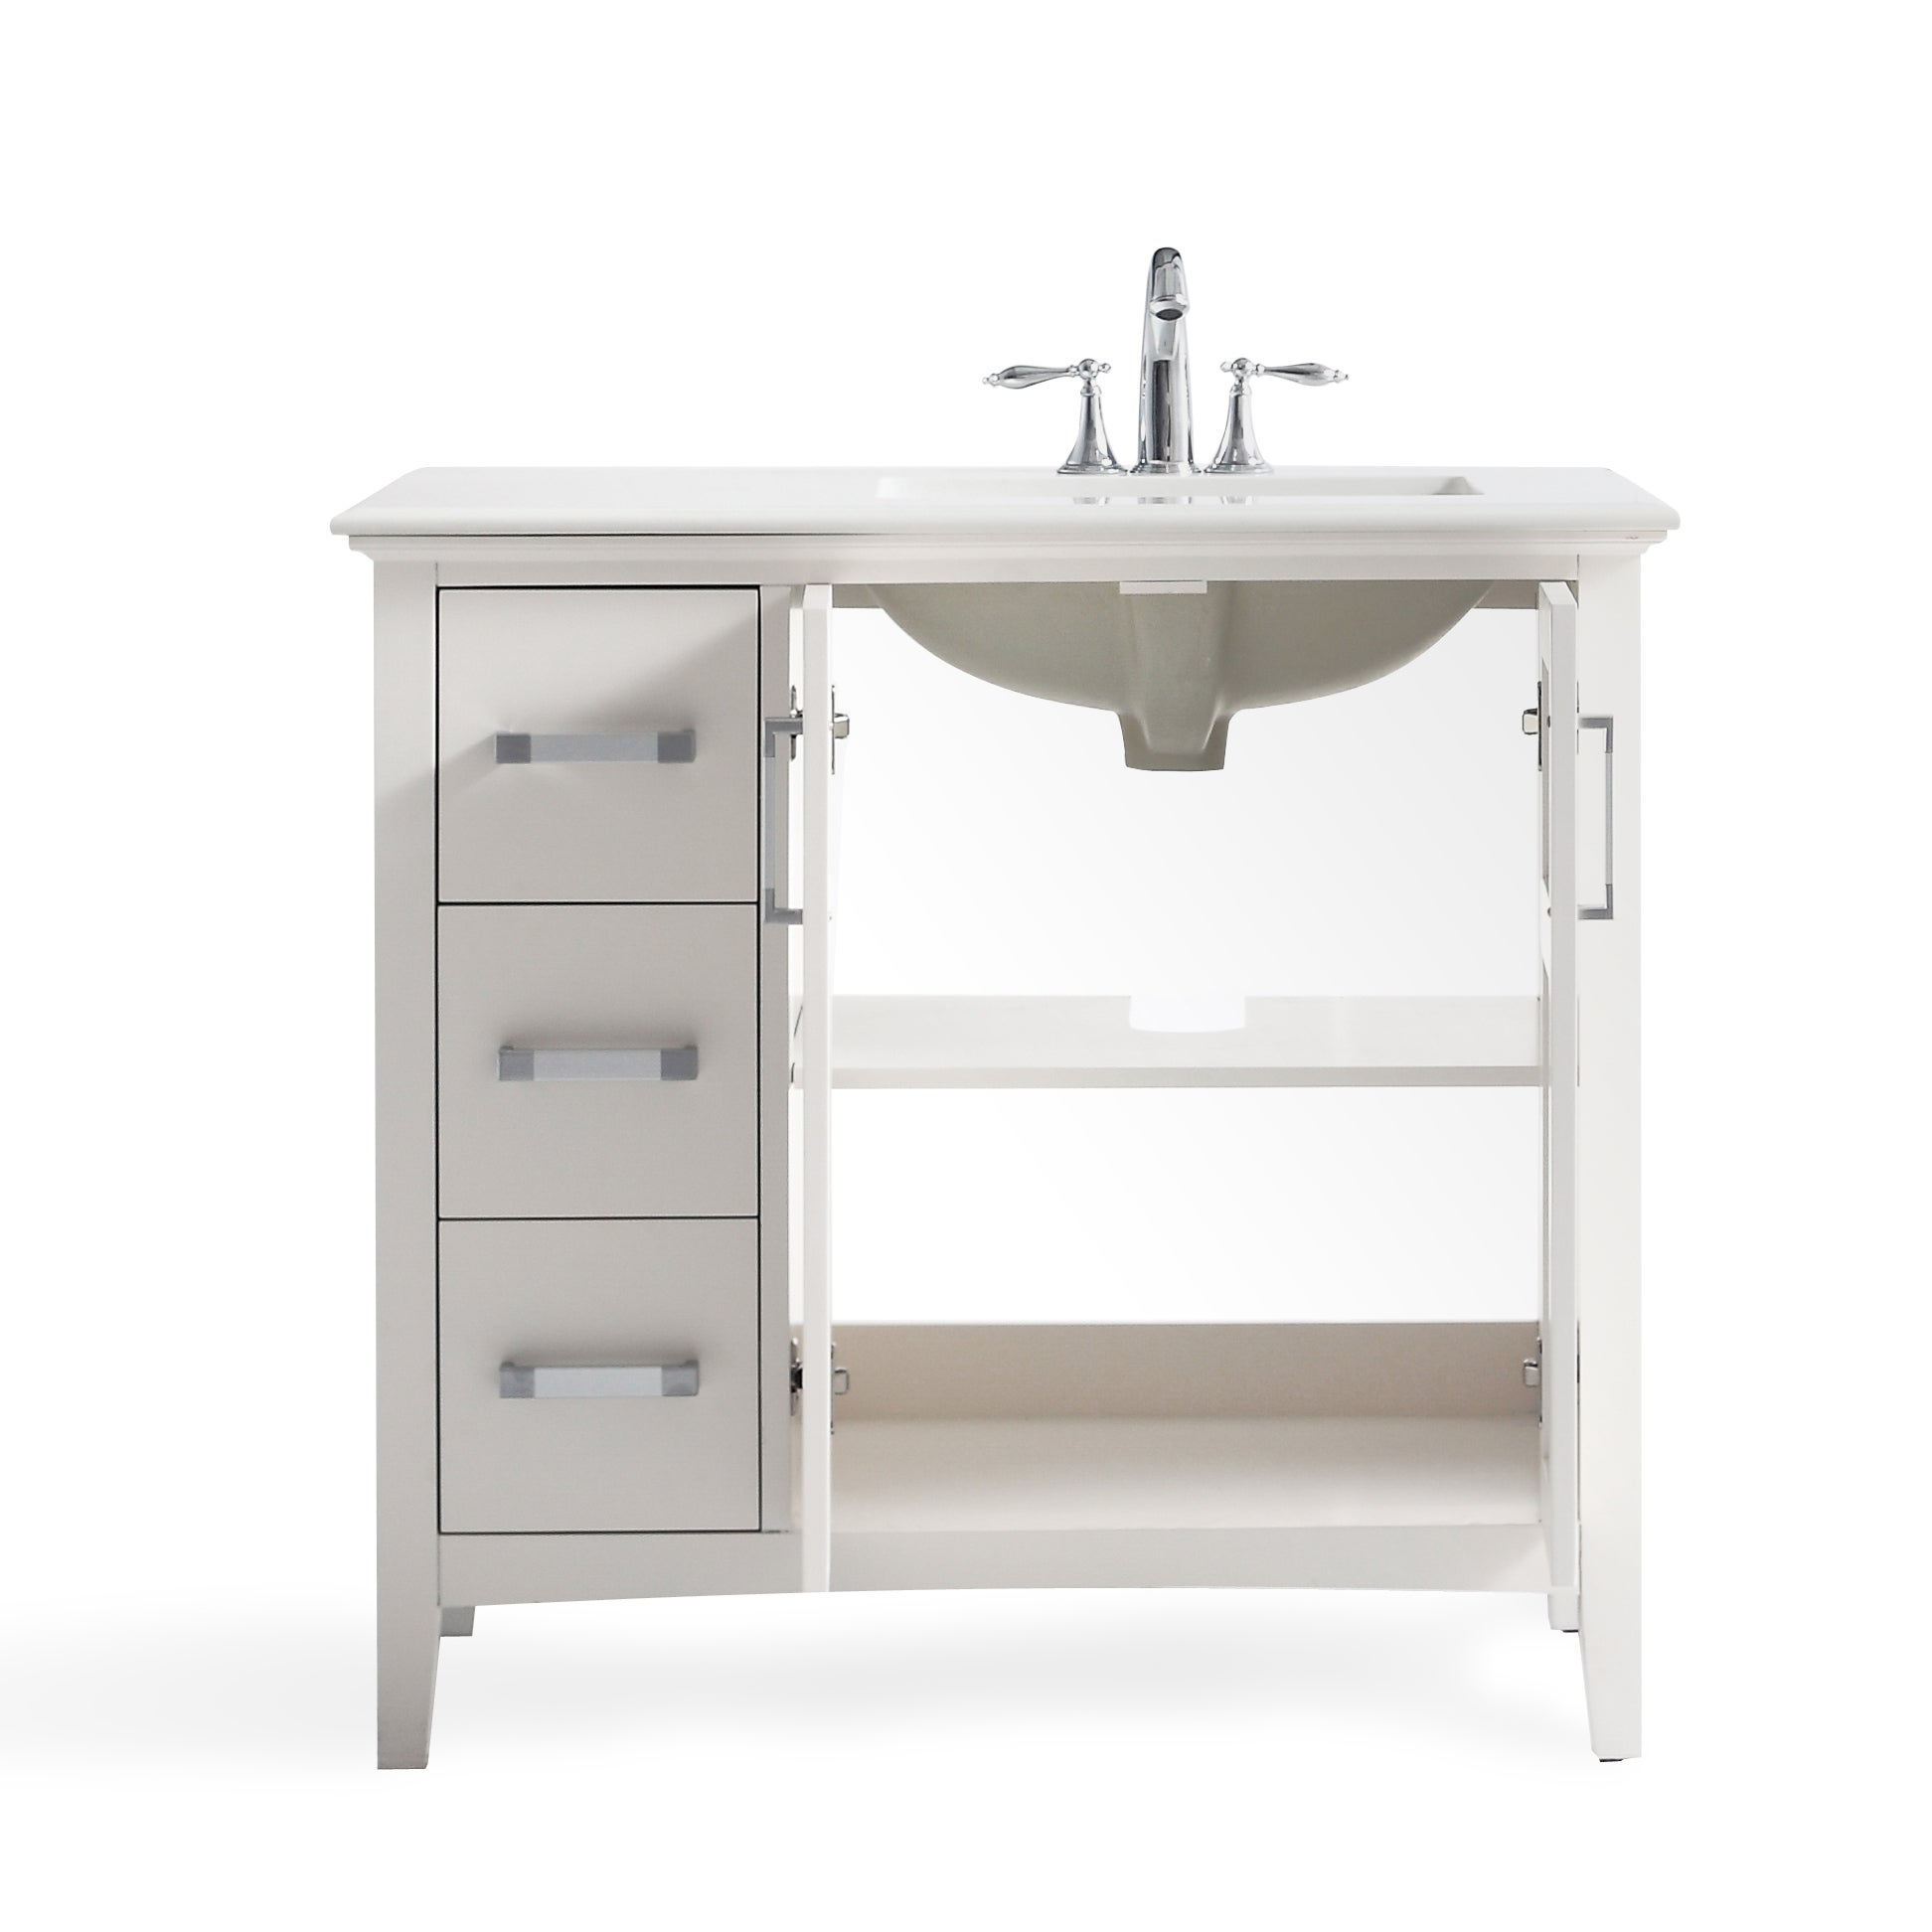 WYNDENHALL Salem 36-inch Left Offset Bath Vanity in White with White Quartz  Marble Top - Free Shipping Today - Overstock.com - 20649127